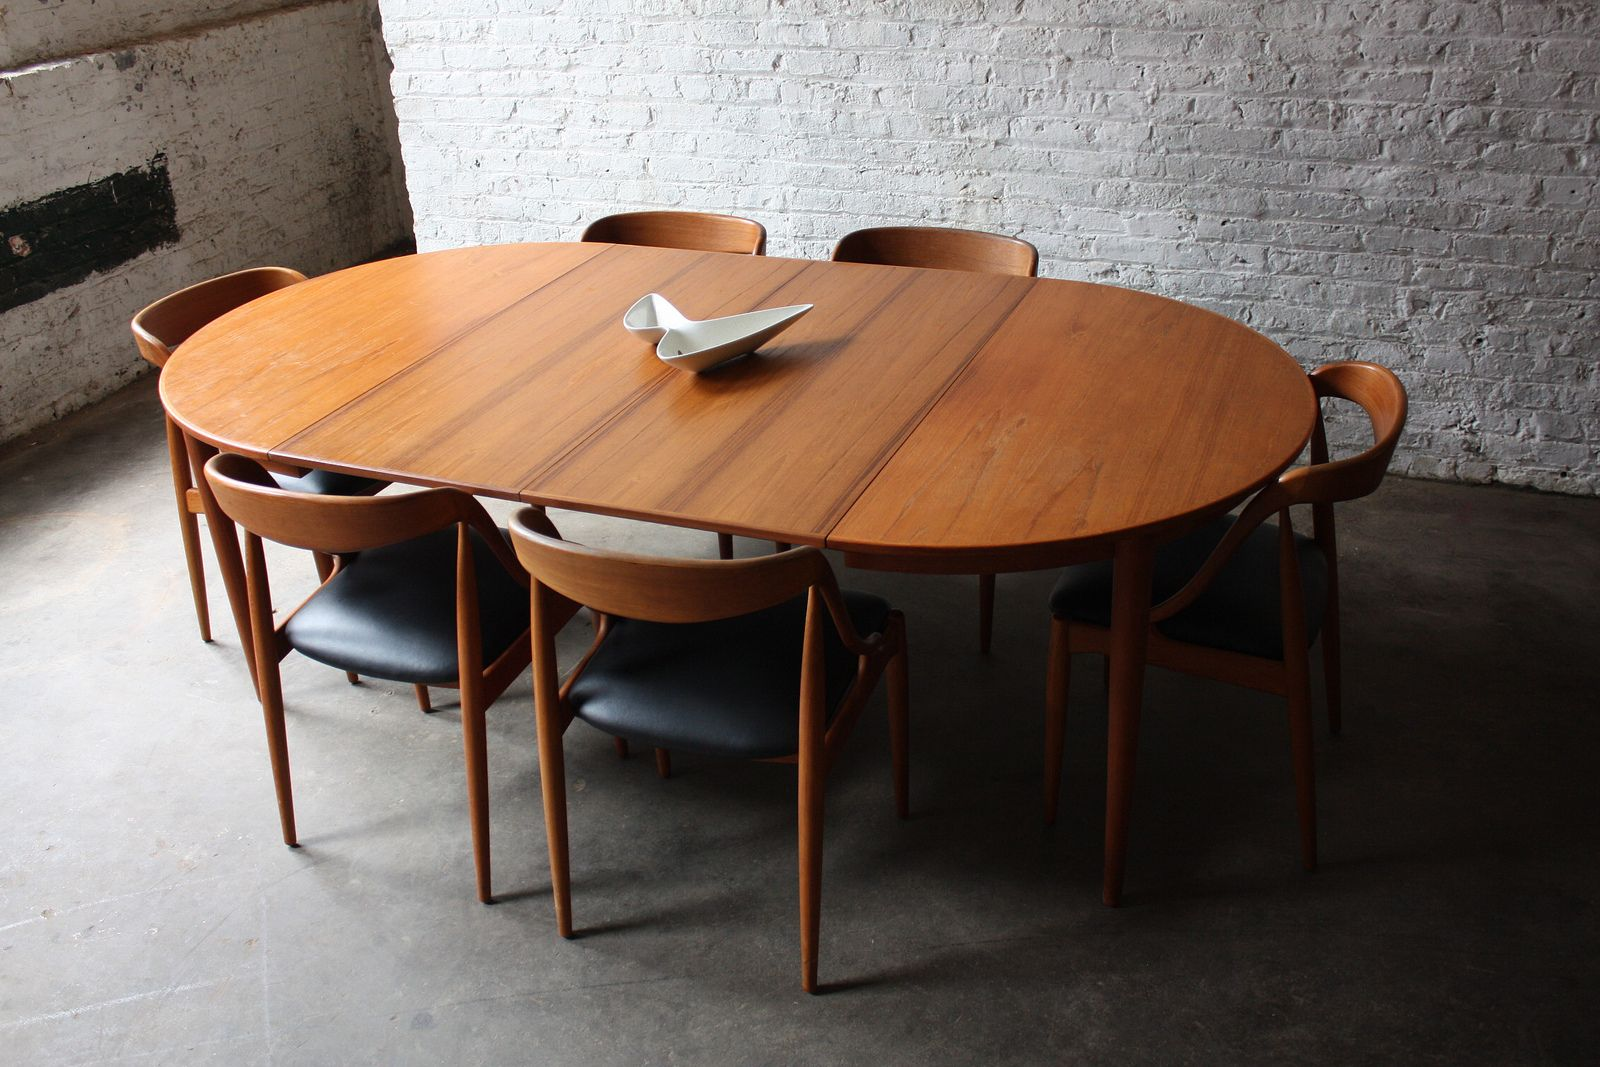 Breathtaking Johannes Andersen Danish Modern Teak Dining Table And